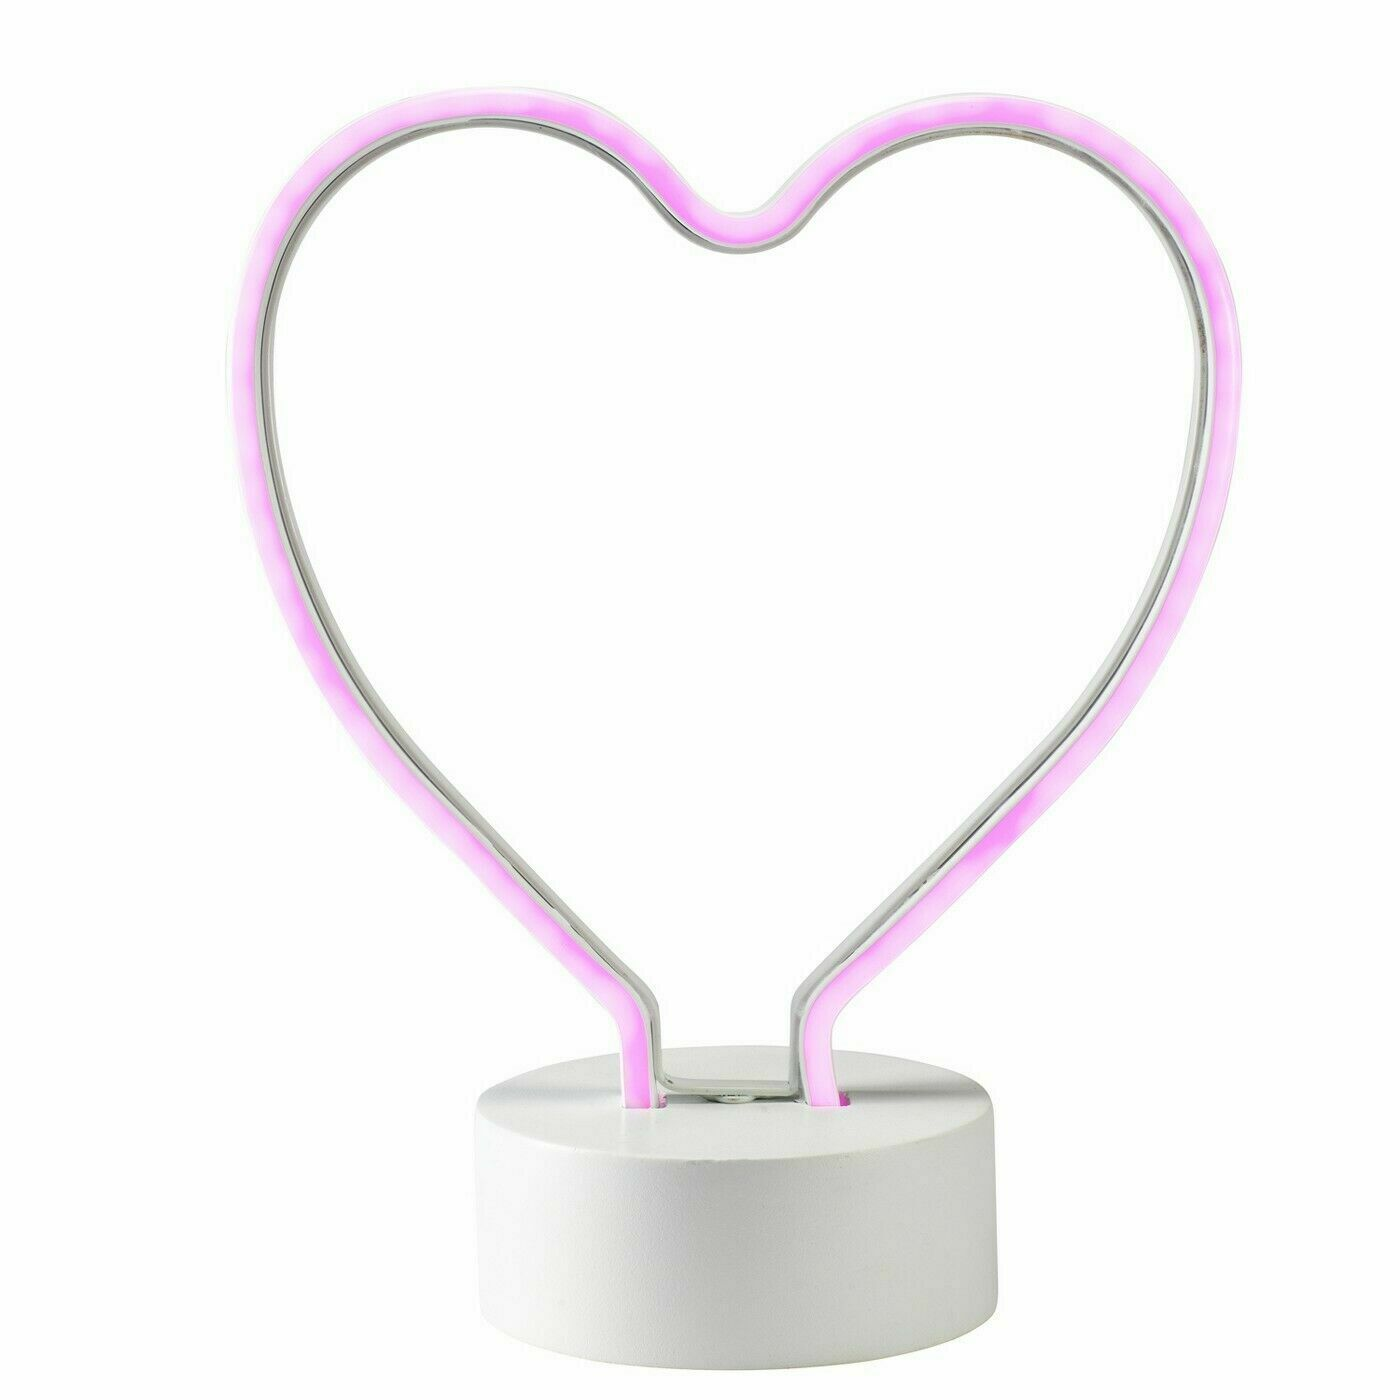 Spritz Faux-Neon LED Heart Sign Tabletop Room Decor Battery Operated Heart Pink